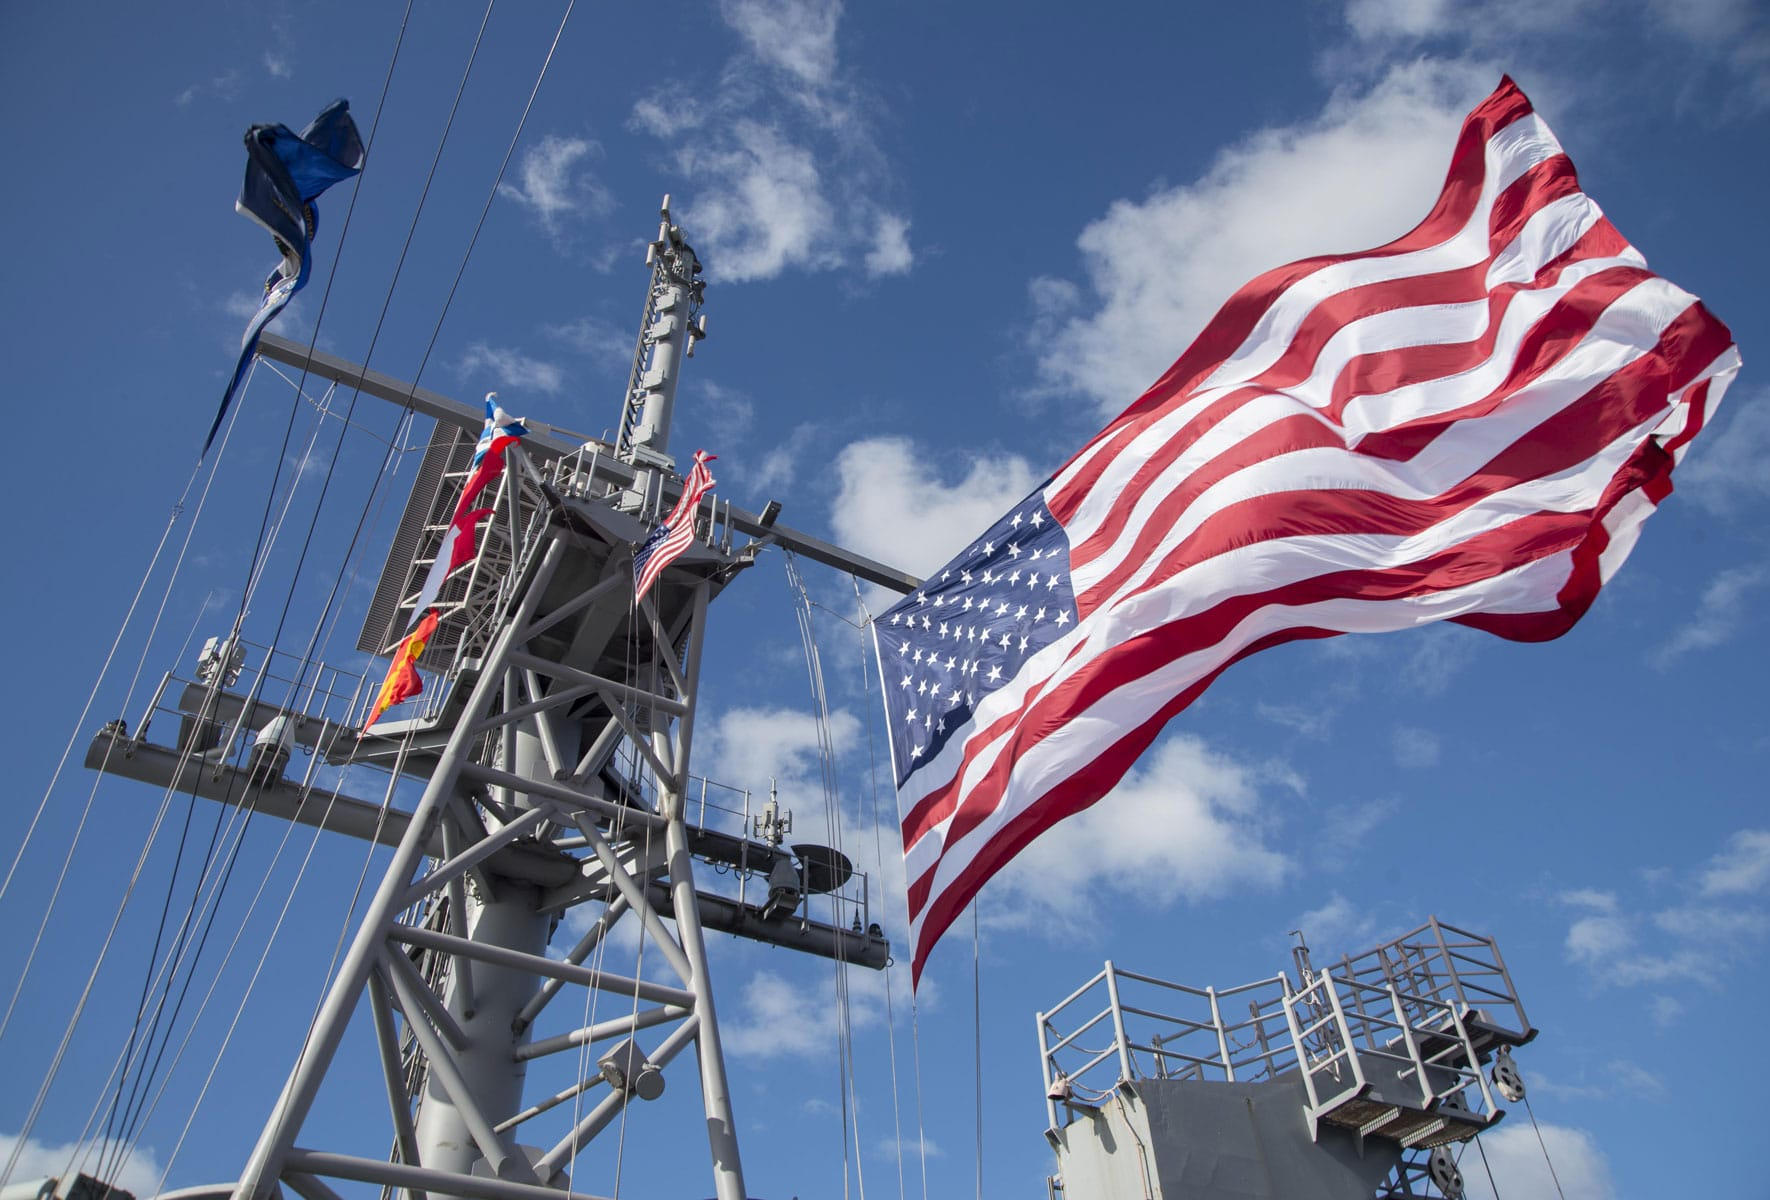 5733efe0065e The United States Navy battle flag and battle ensign fly on the masts of  the amphibious